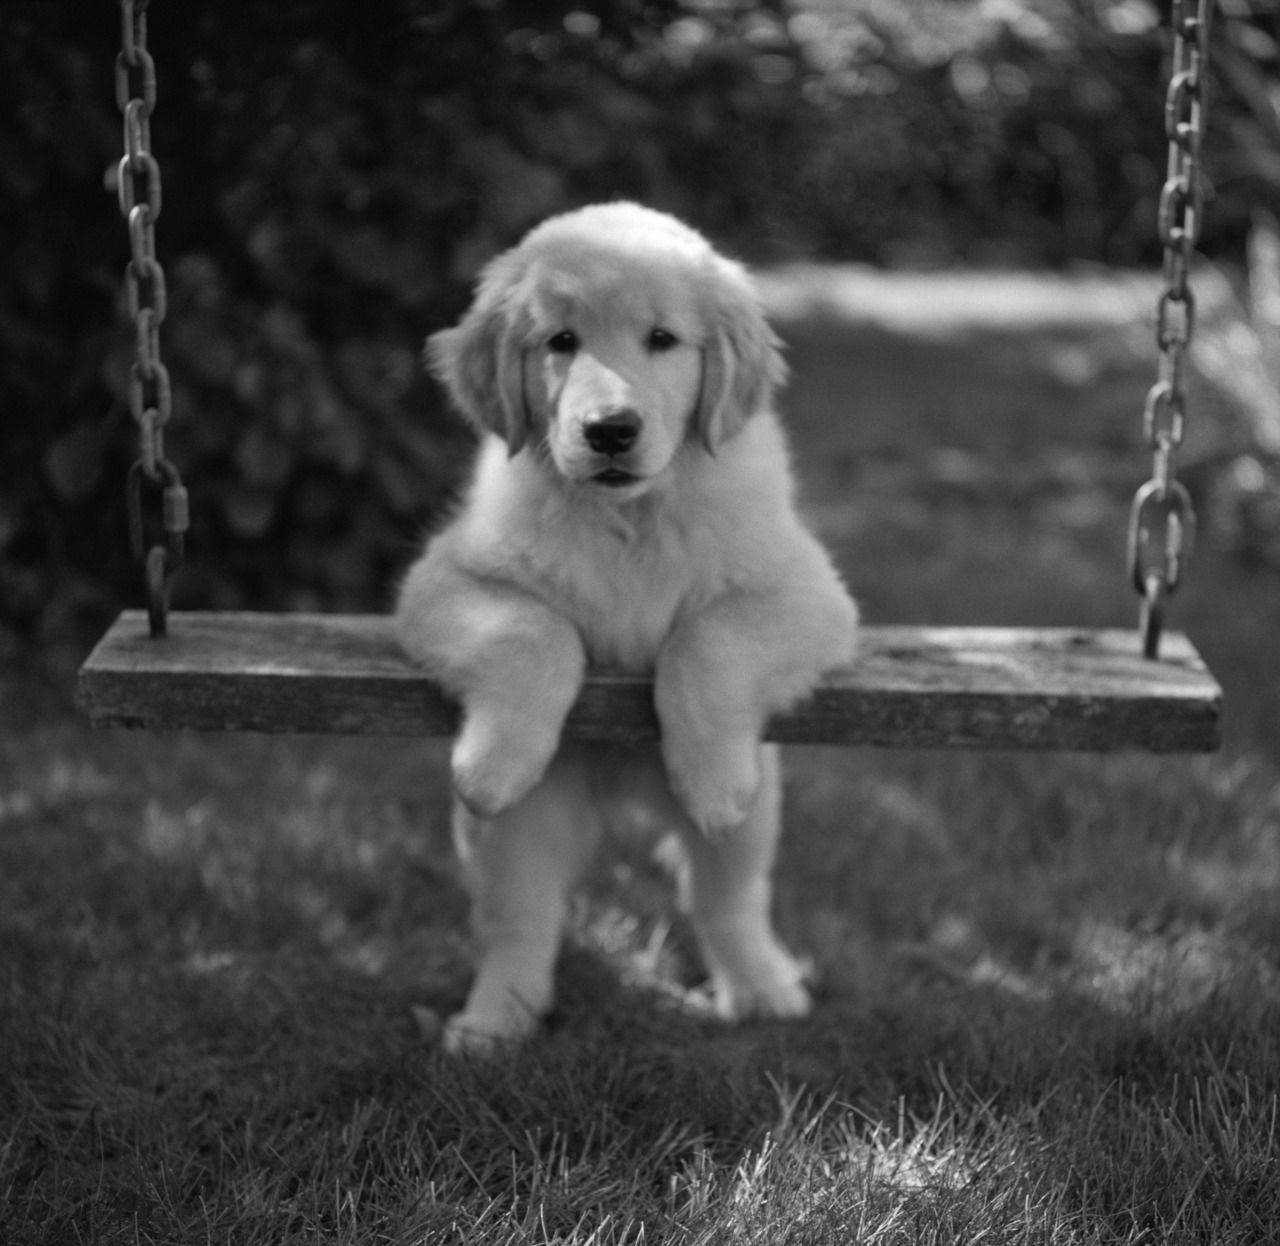 In Black and White Cute puppies, Puppies, Cute animals